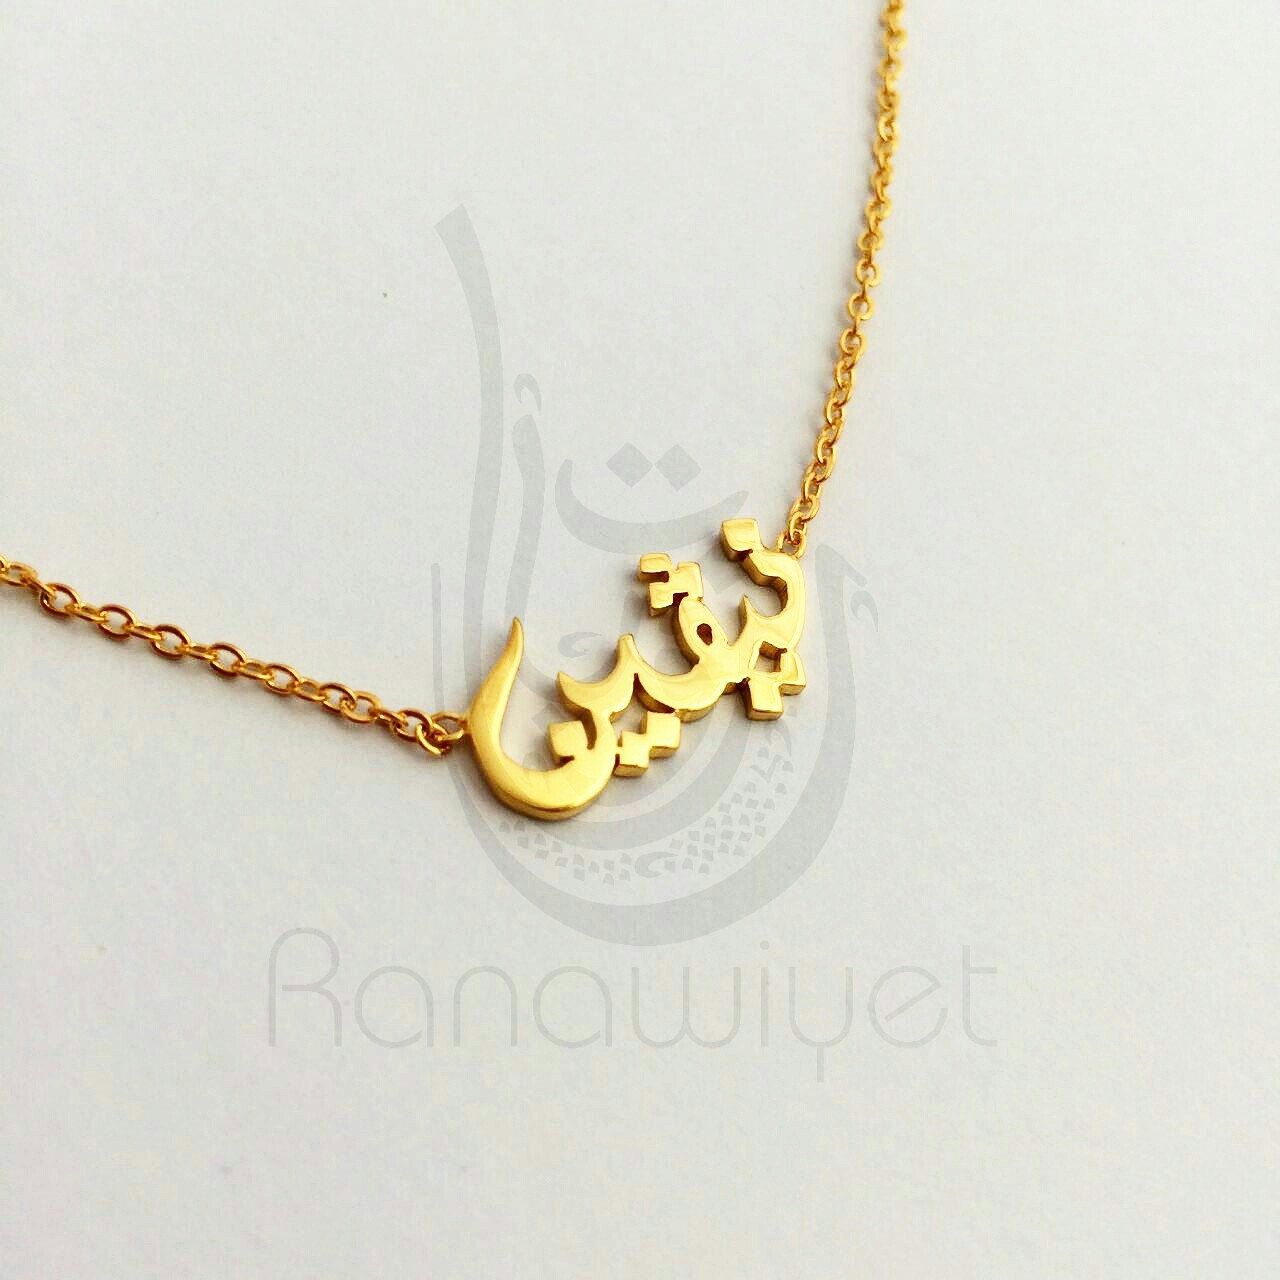 My Smallest Nameplate Necklace 2 Cm In Length Neveen نيفين Arabicnamenecklace Arabicnameplate Arabic N Jewelry Engraved Necklace Personalized Necklace